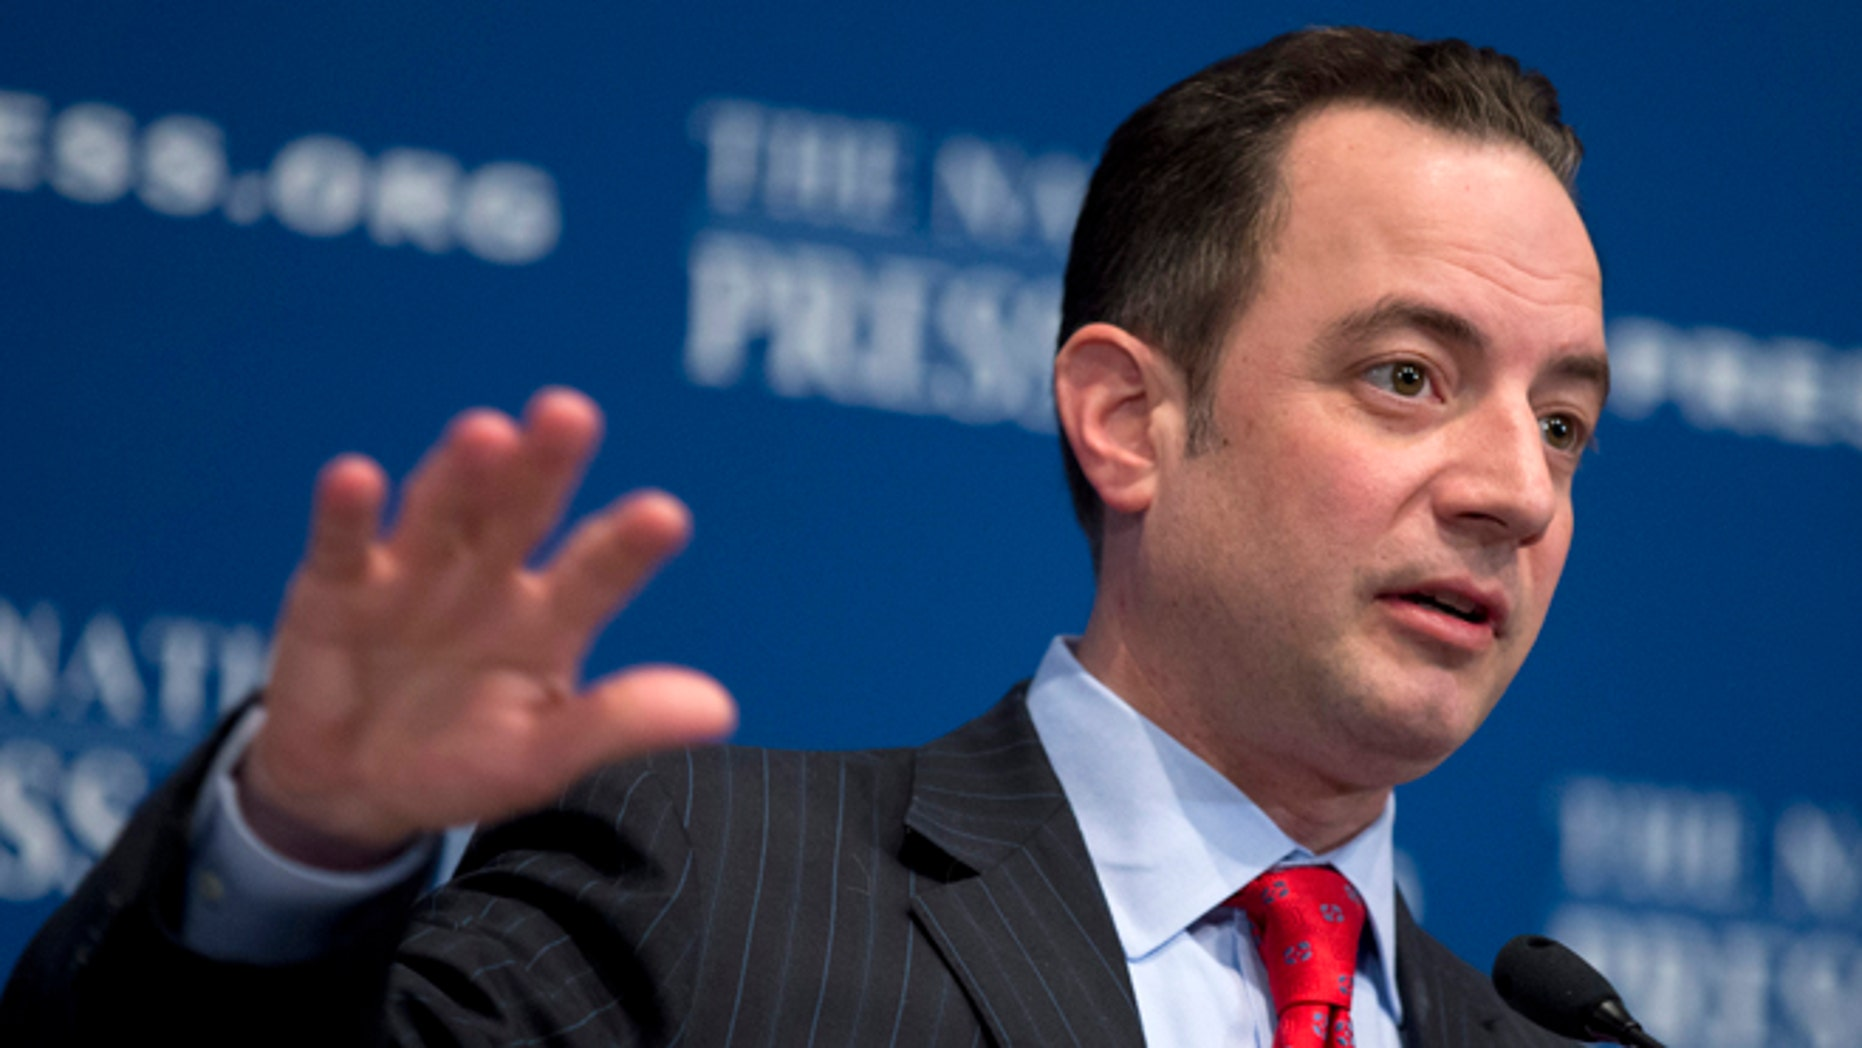 "Republican National Committee (RNC) Chairman Reince Priebus gestures while speaking at the National Press Club in Washington, Monday, March 18, 2013. The RNC formally endorsed immigration reform on Monday and outlined plans for a $10 million outreach to minority groups _ gay voters among them _ as part of a strategy to make the GOP more ""welcoming and inclusive"" for voters who overwhelmingly supported Democrats in 2012.   (AP Photo/Manuel Balce Ceneta)"